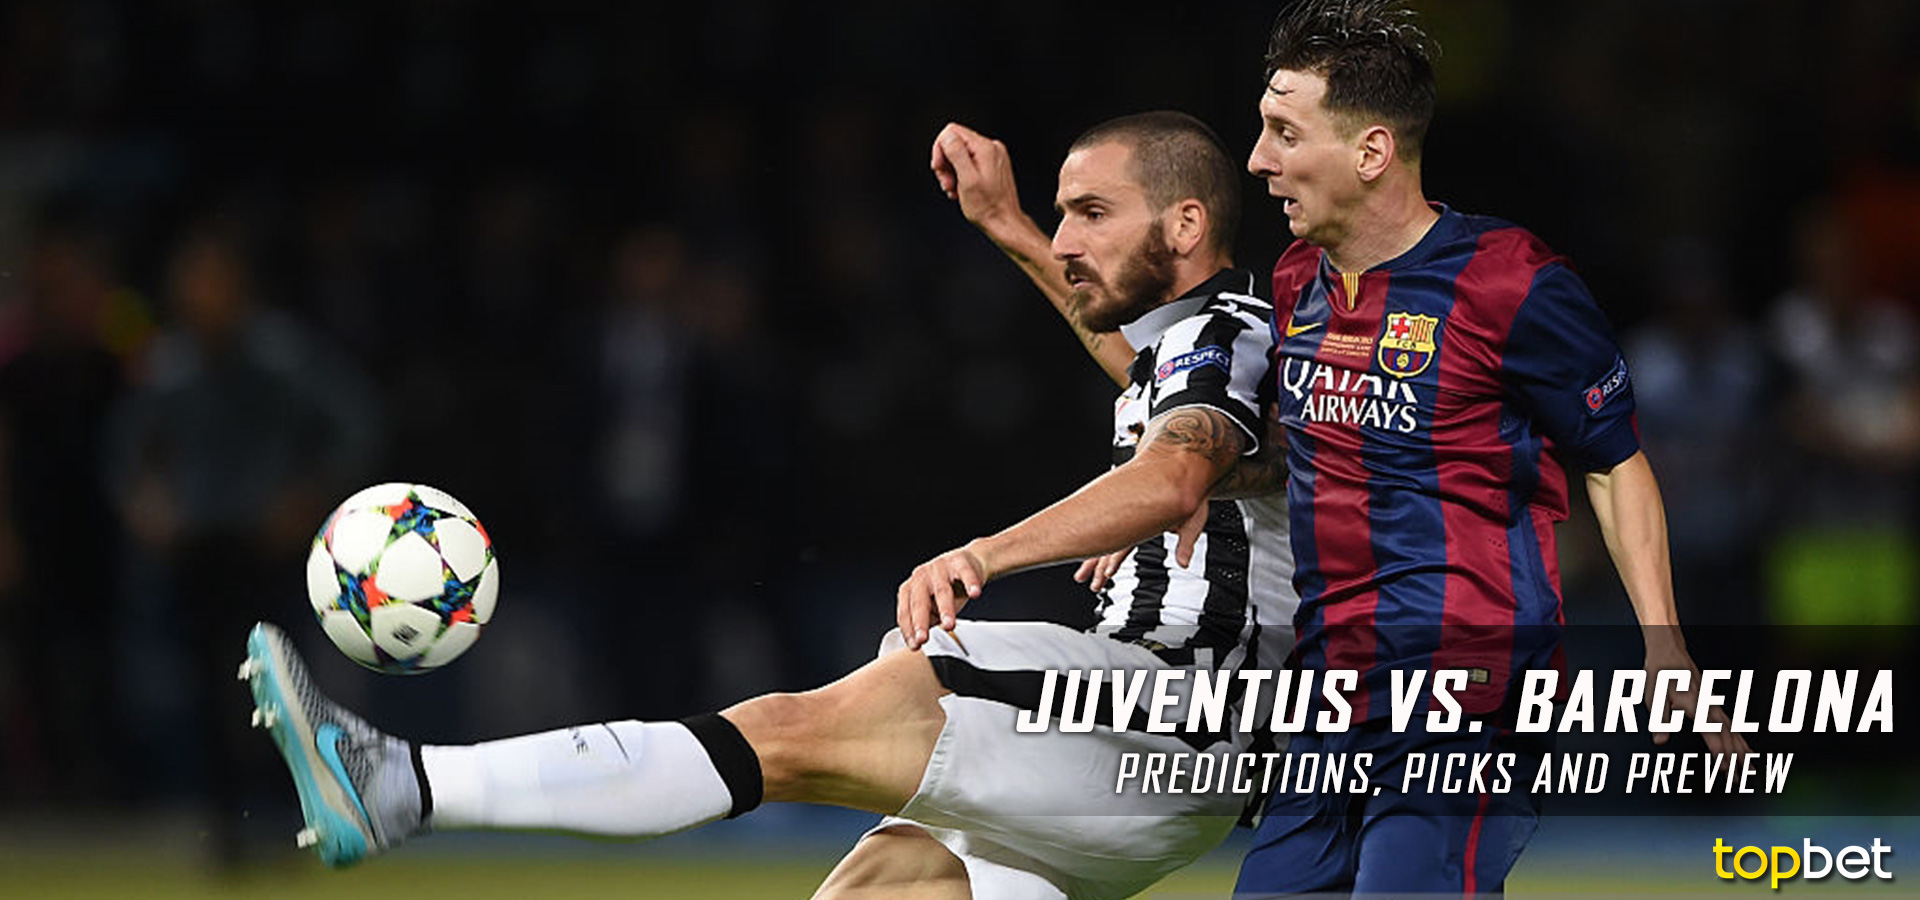 Juventus vs Barcelona Champions League Predictions & Preview